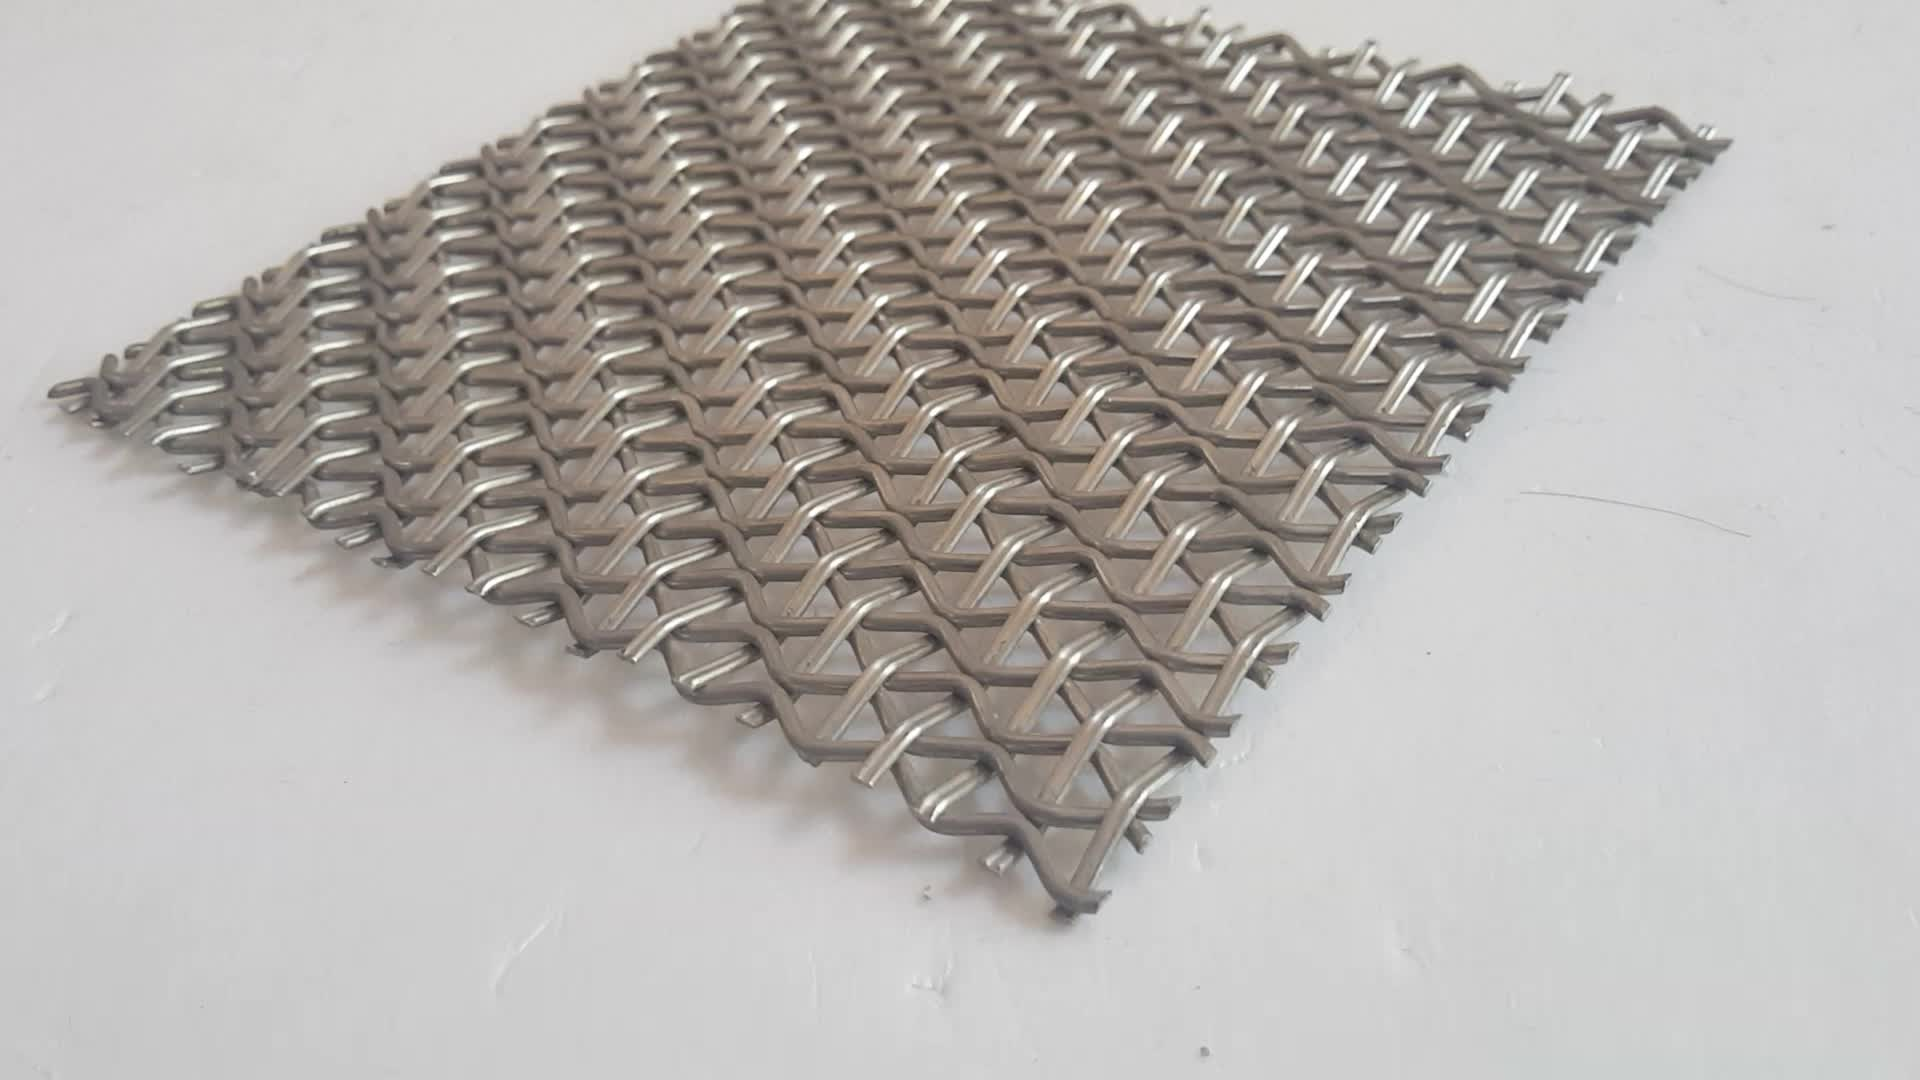 Antique Copper Plated Stainless Steel Woven Decorative Wire Mesh Used For Architecture Ceilings